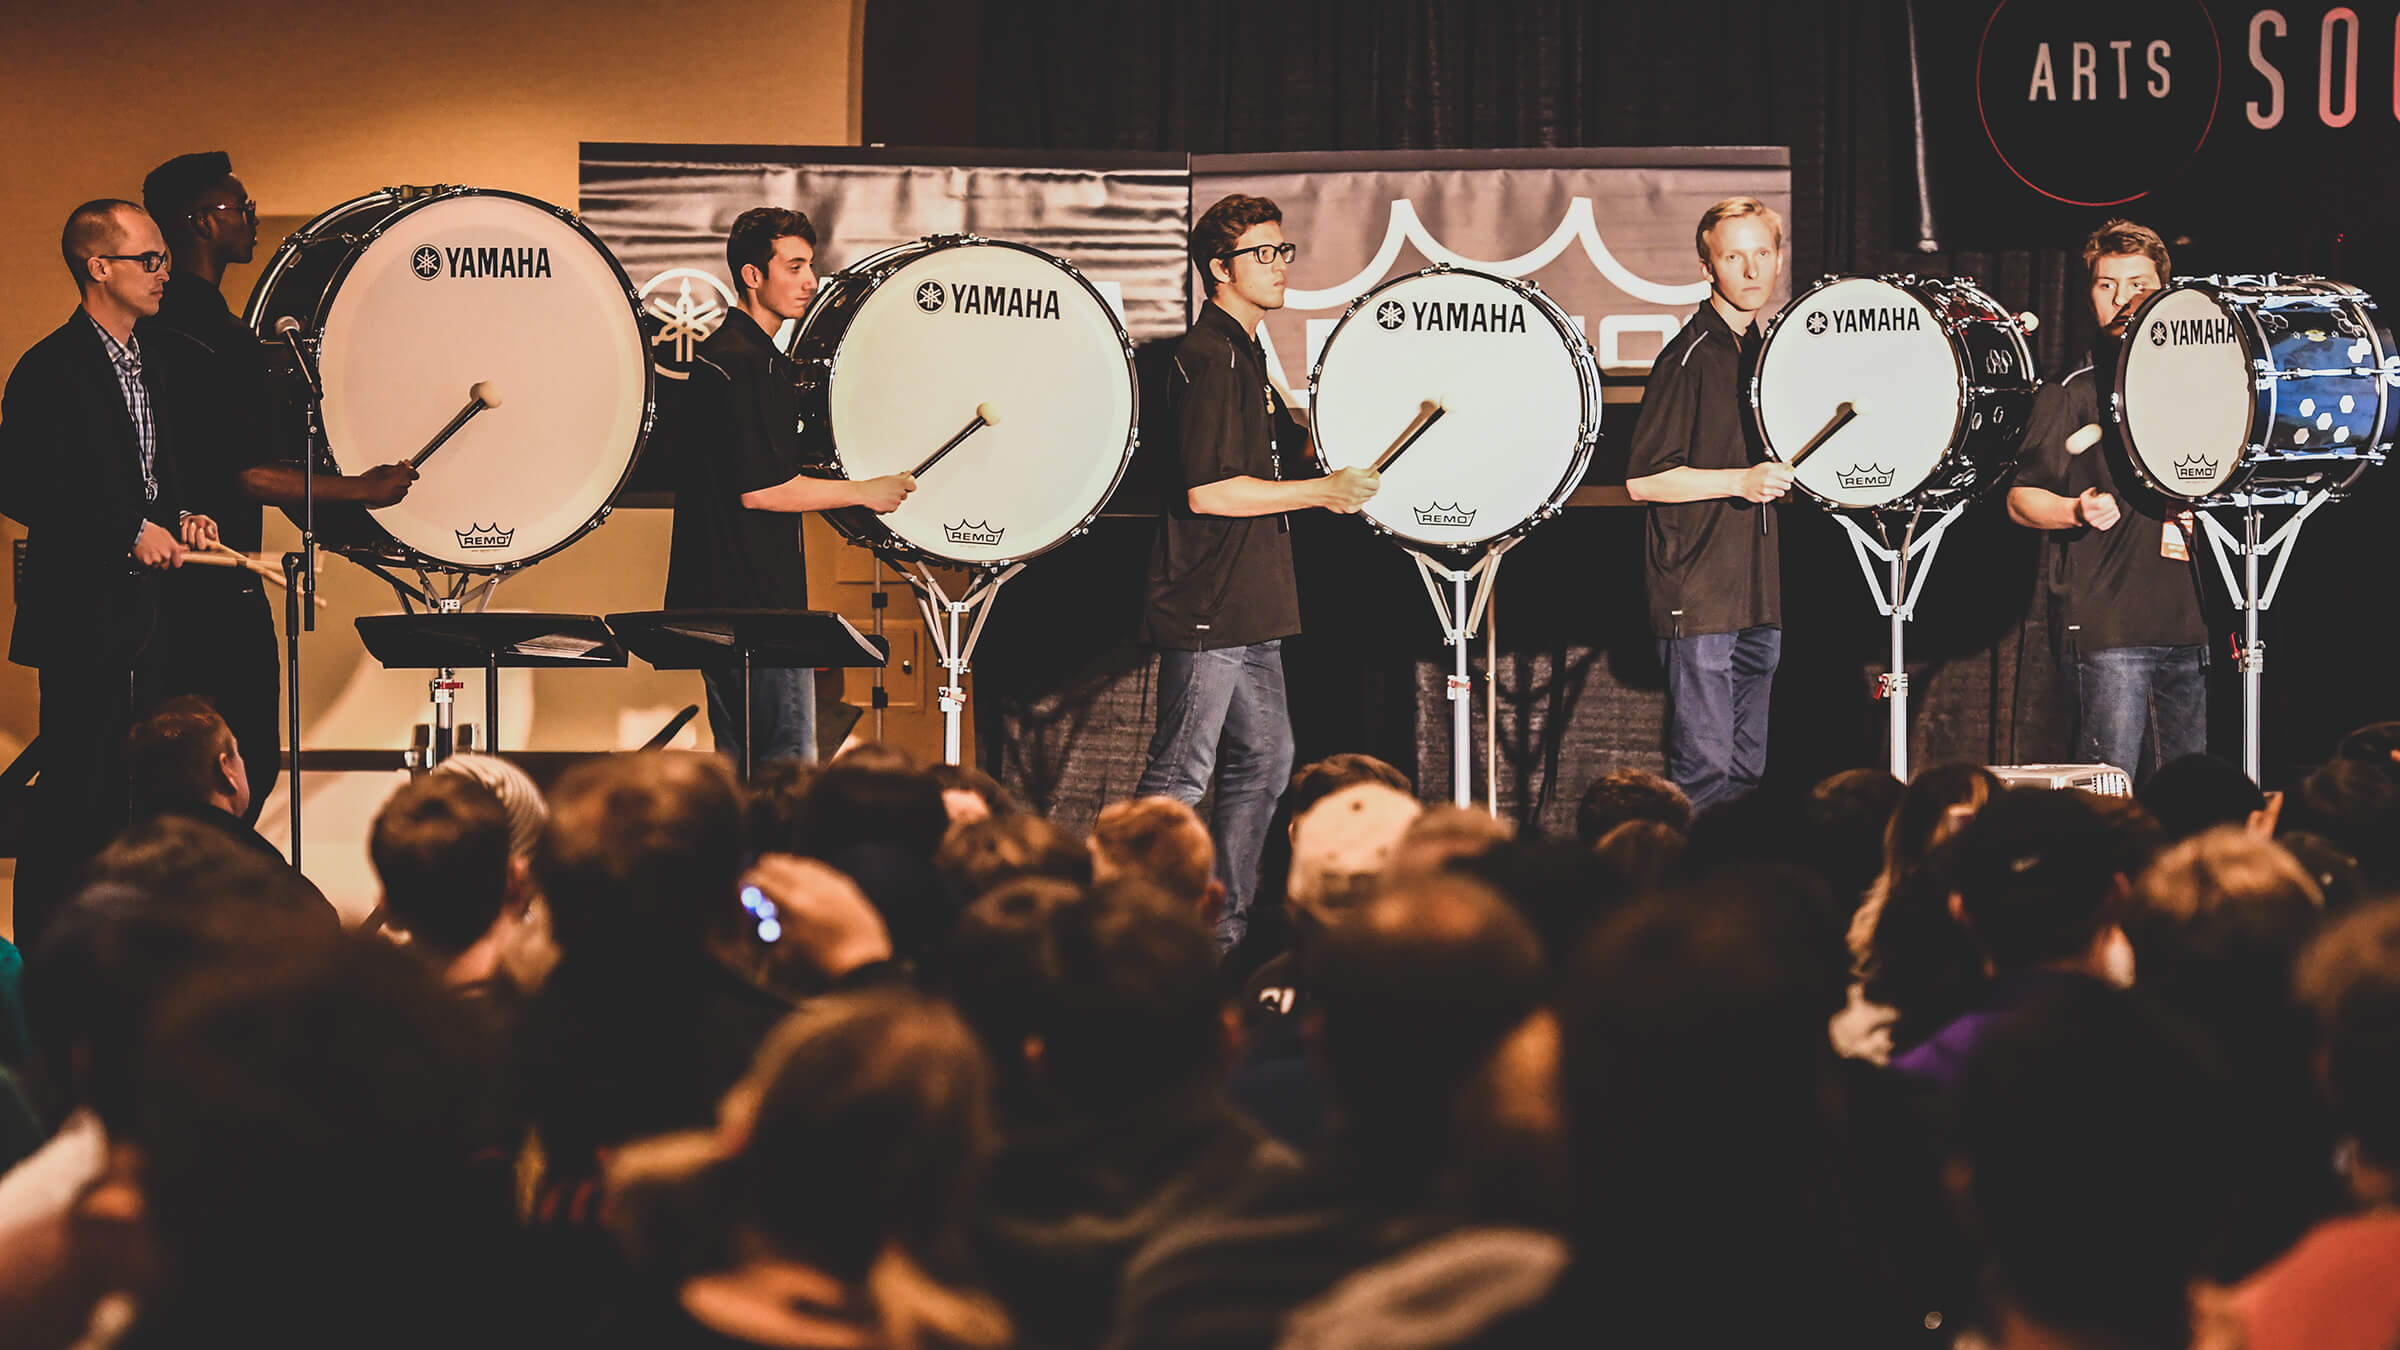 Cavaliers bass drummers entertain, educate at PASIC 2018